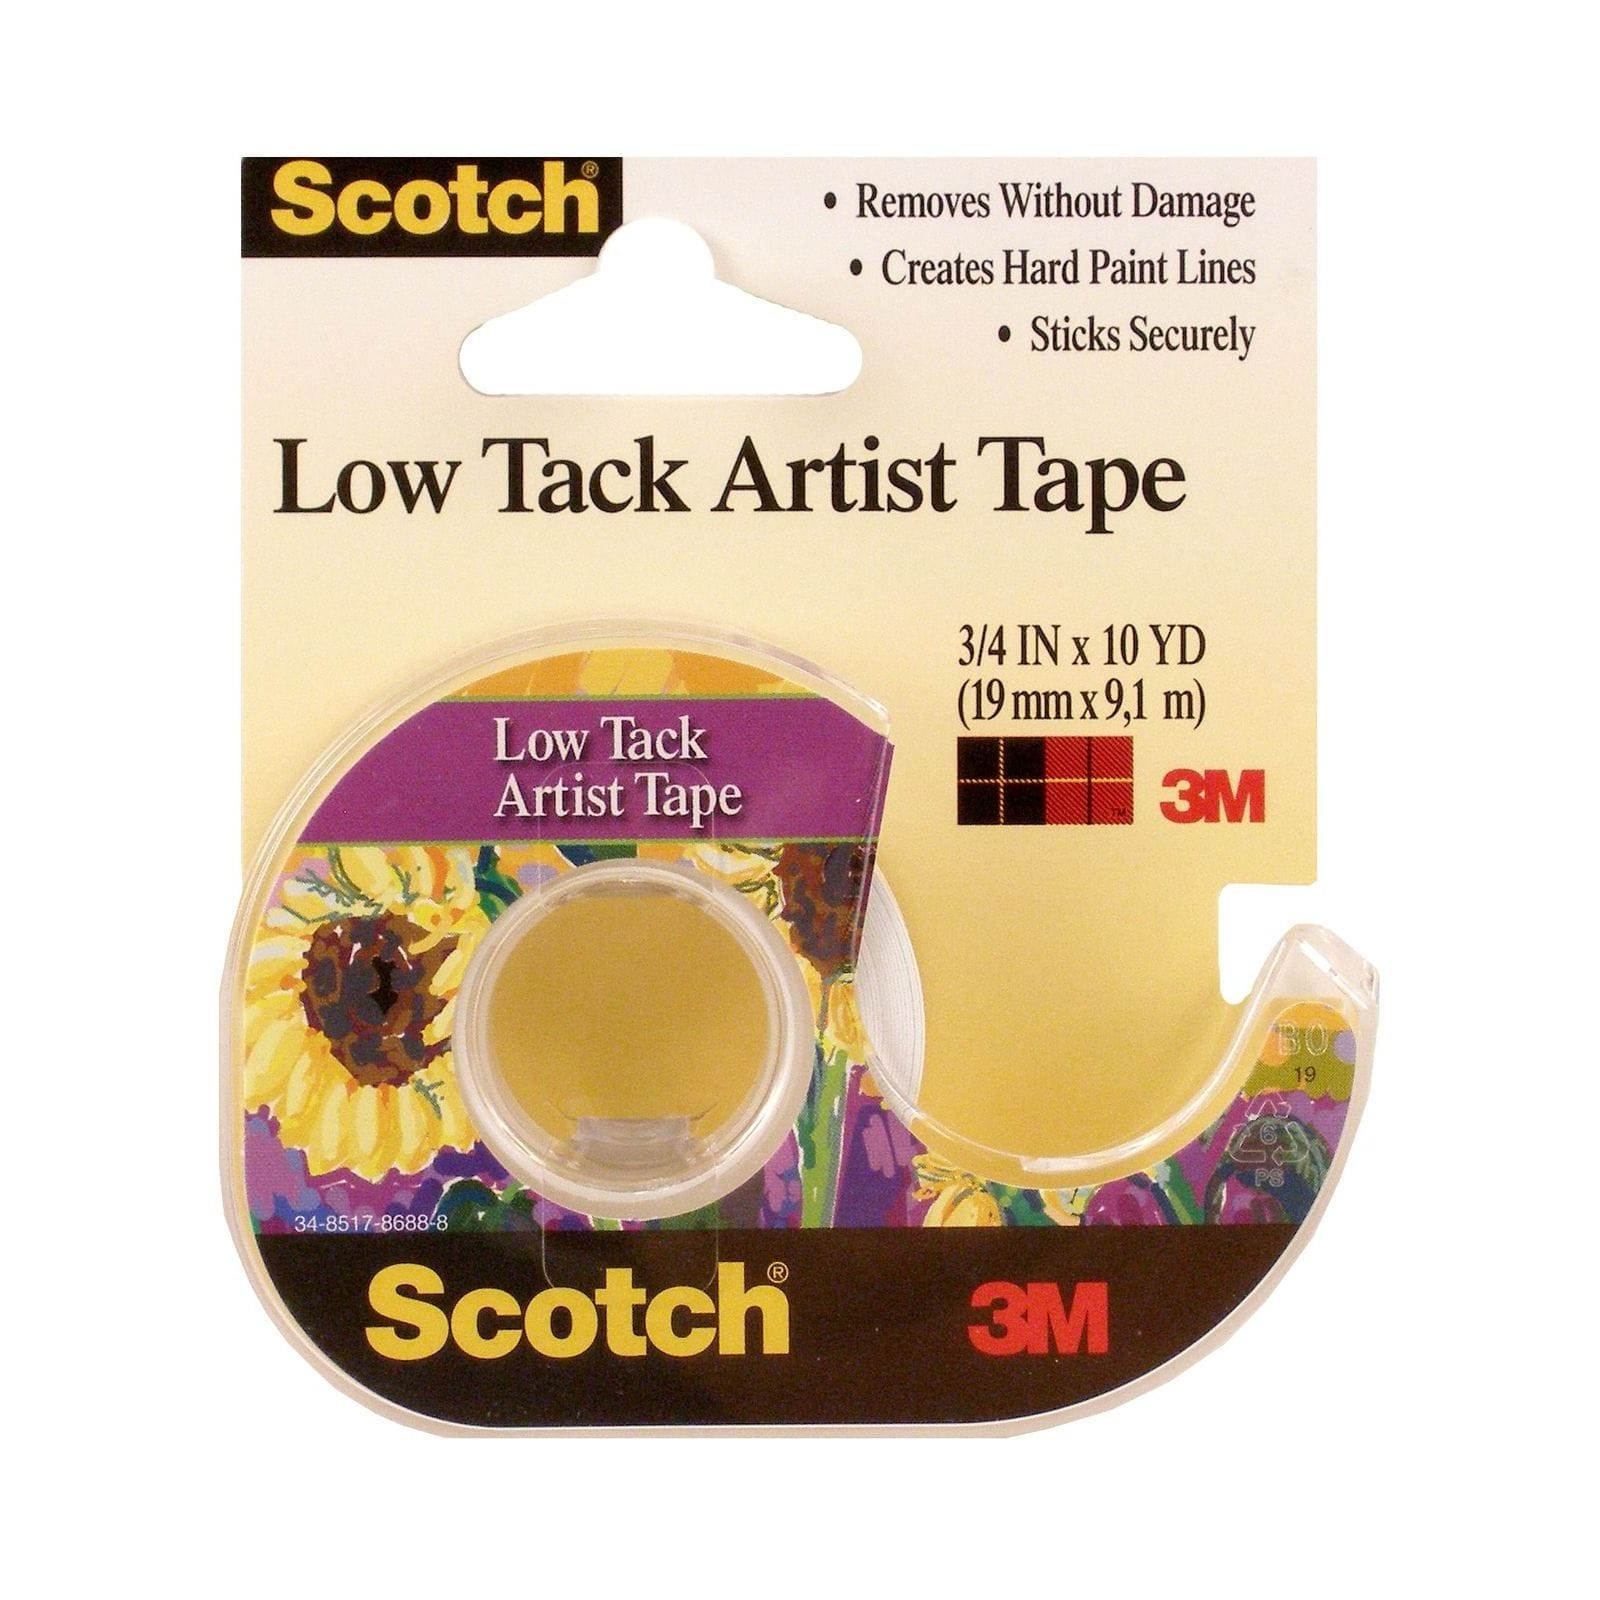 Scotch Low Tack Artist Tape 3/4 in. x 10 yd. (pack of 6)